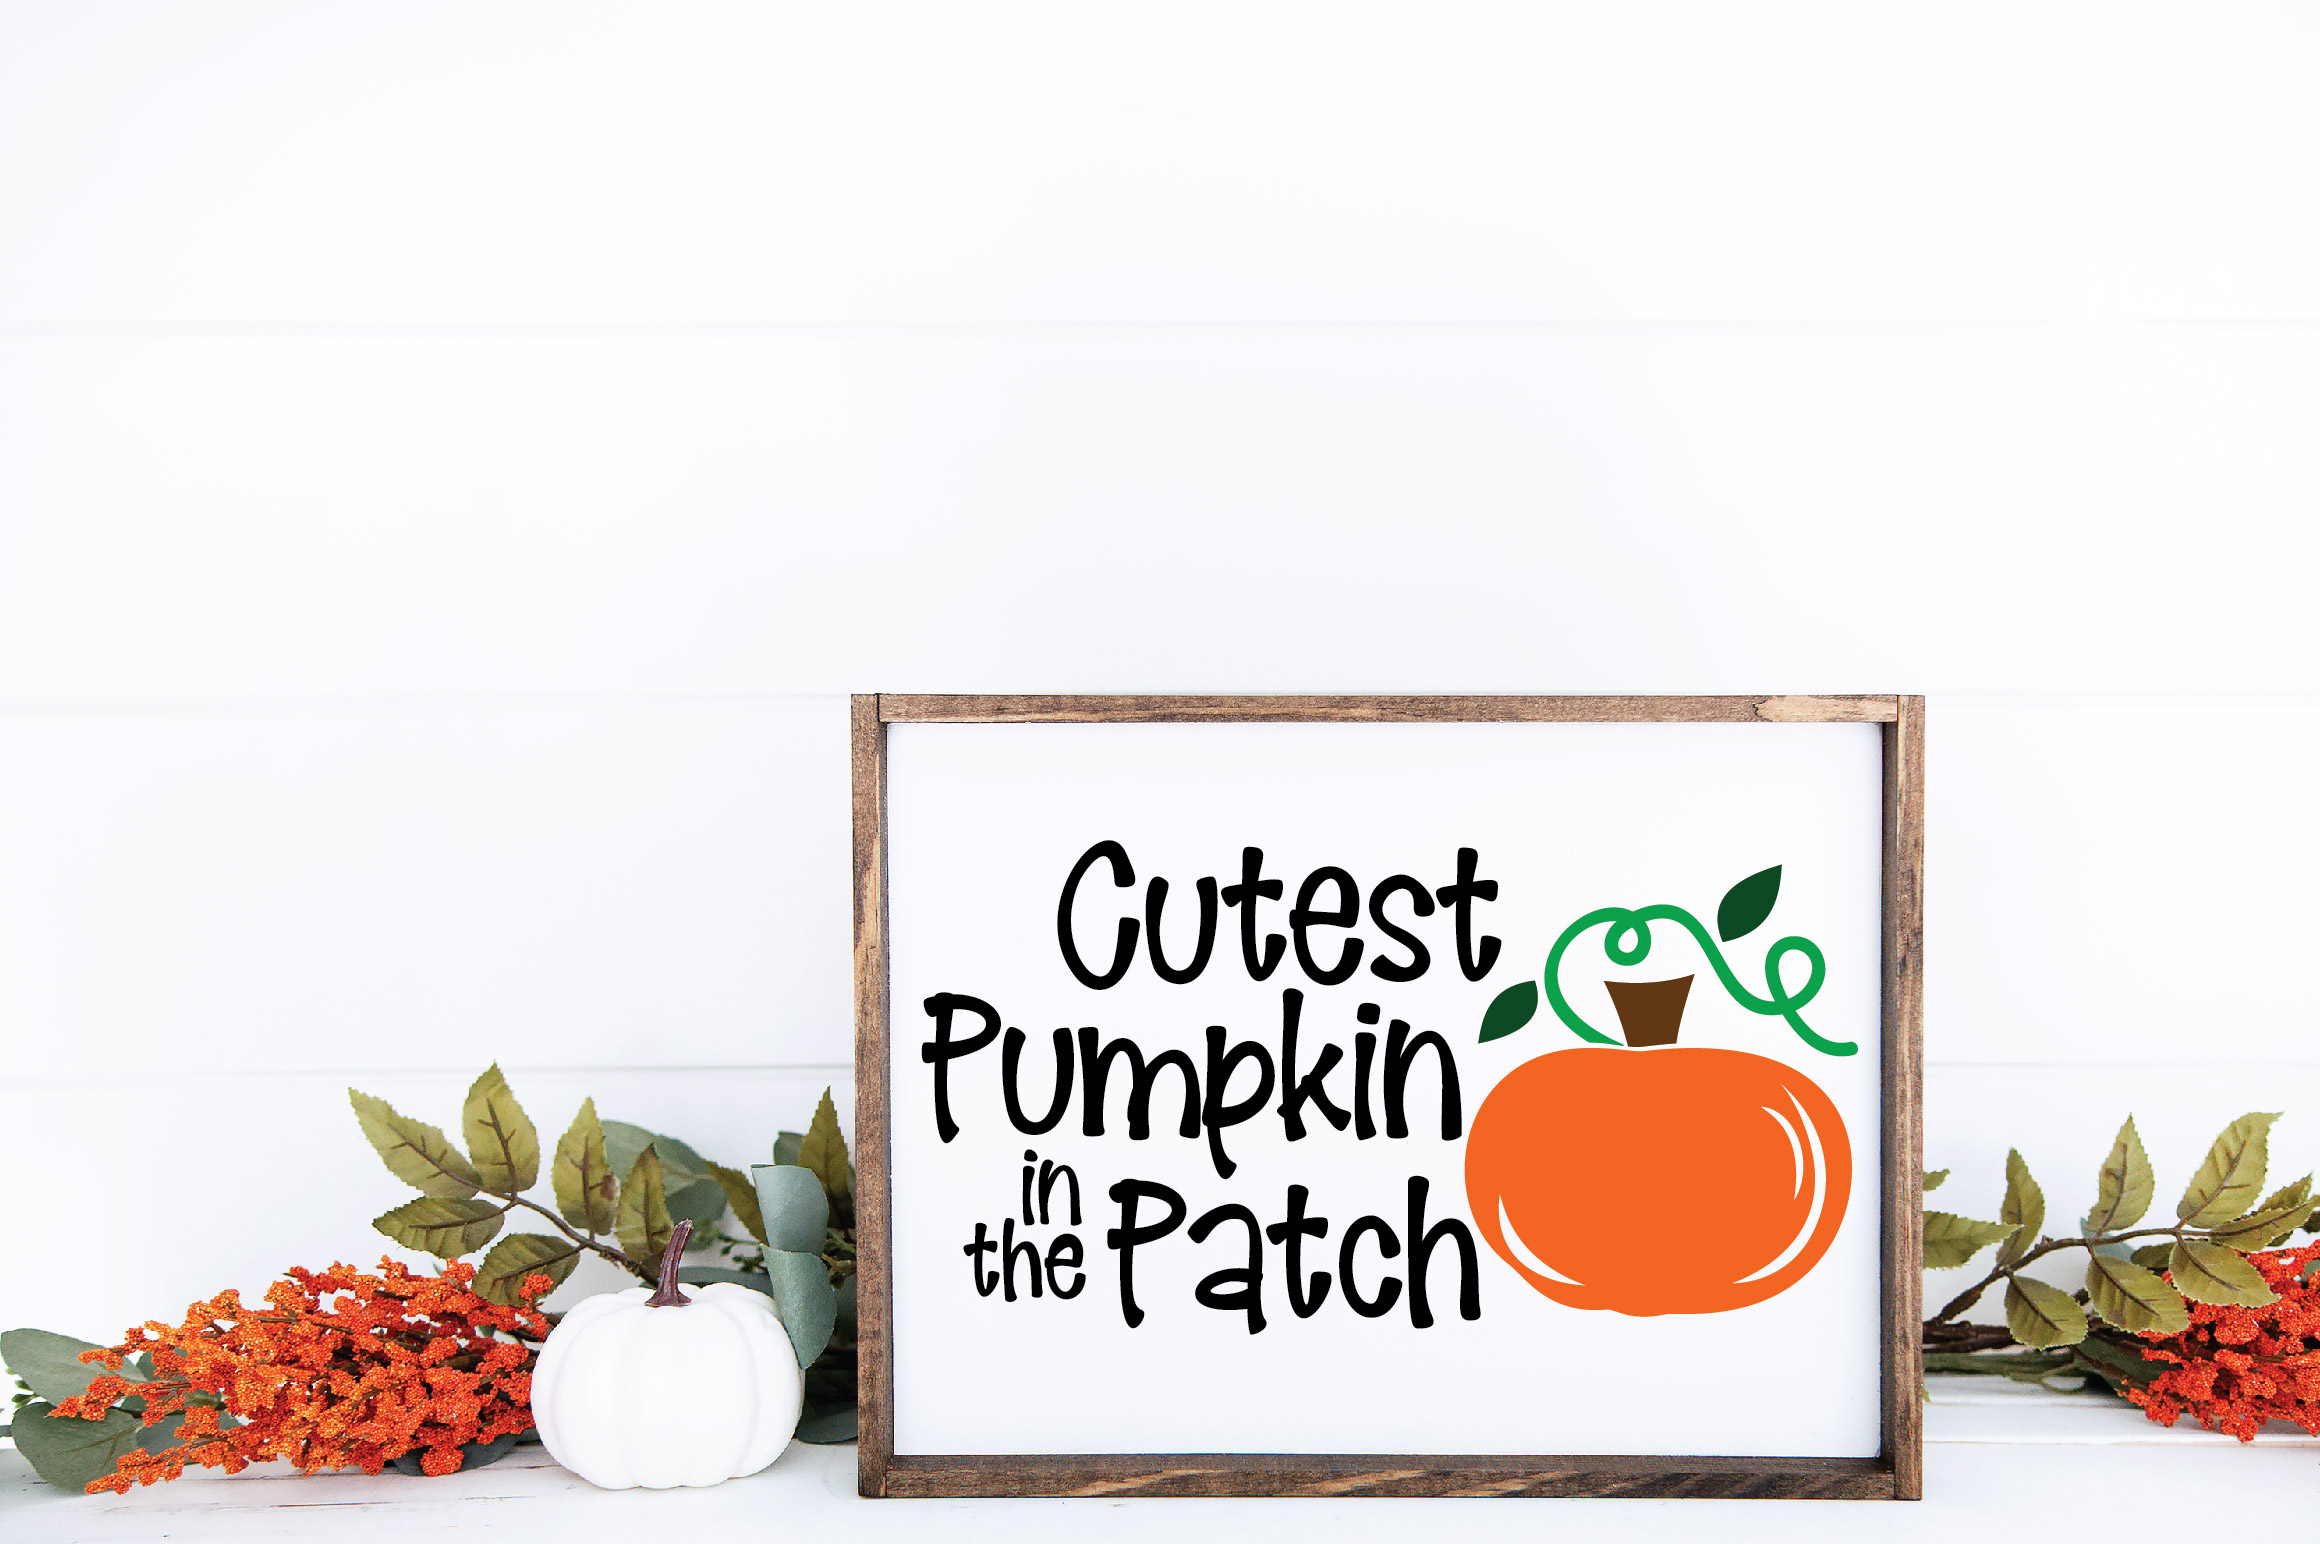 Cutest Pumpkin in the Patch SVG Cut File - Fall Pumpkin SVG example image 5